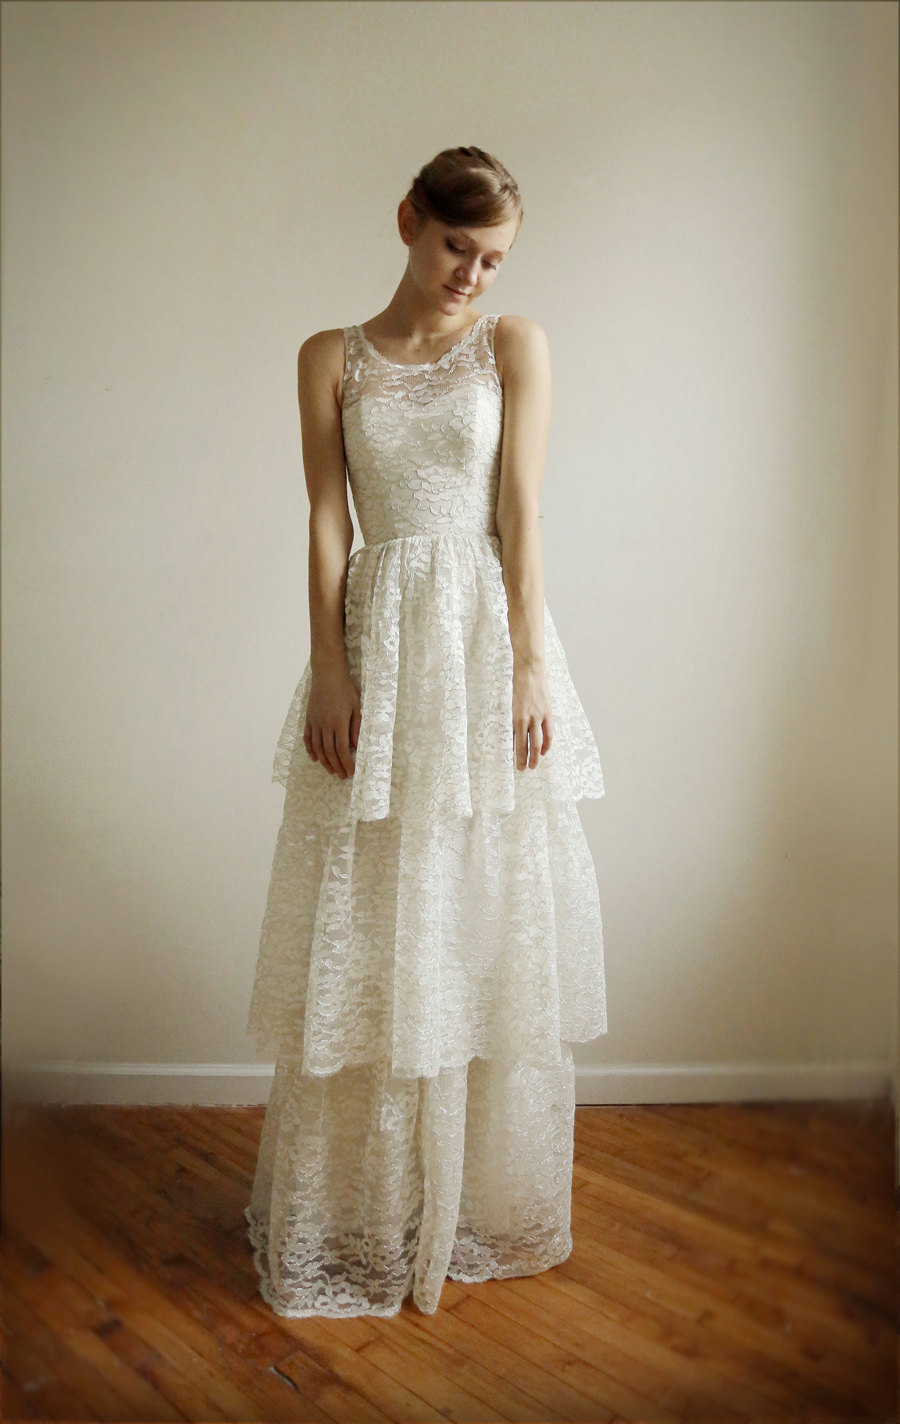 Lace illusion neckline bridesmaid dress